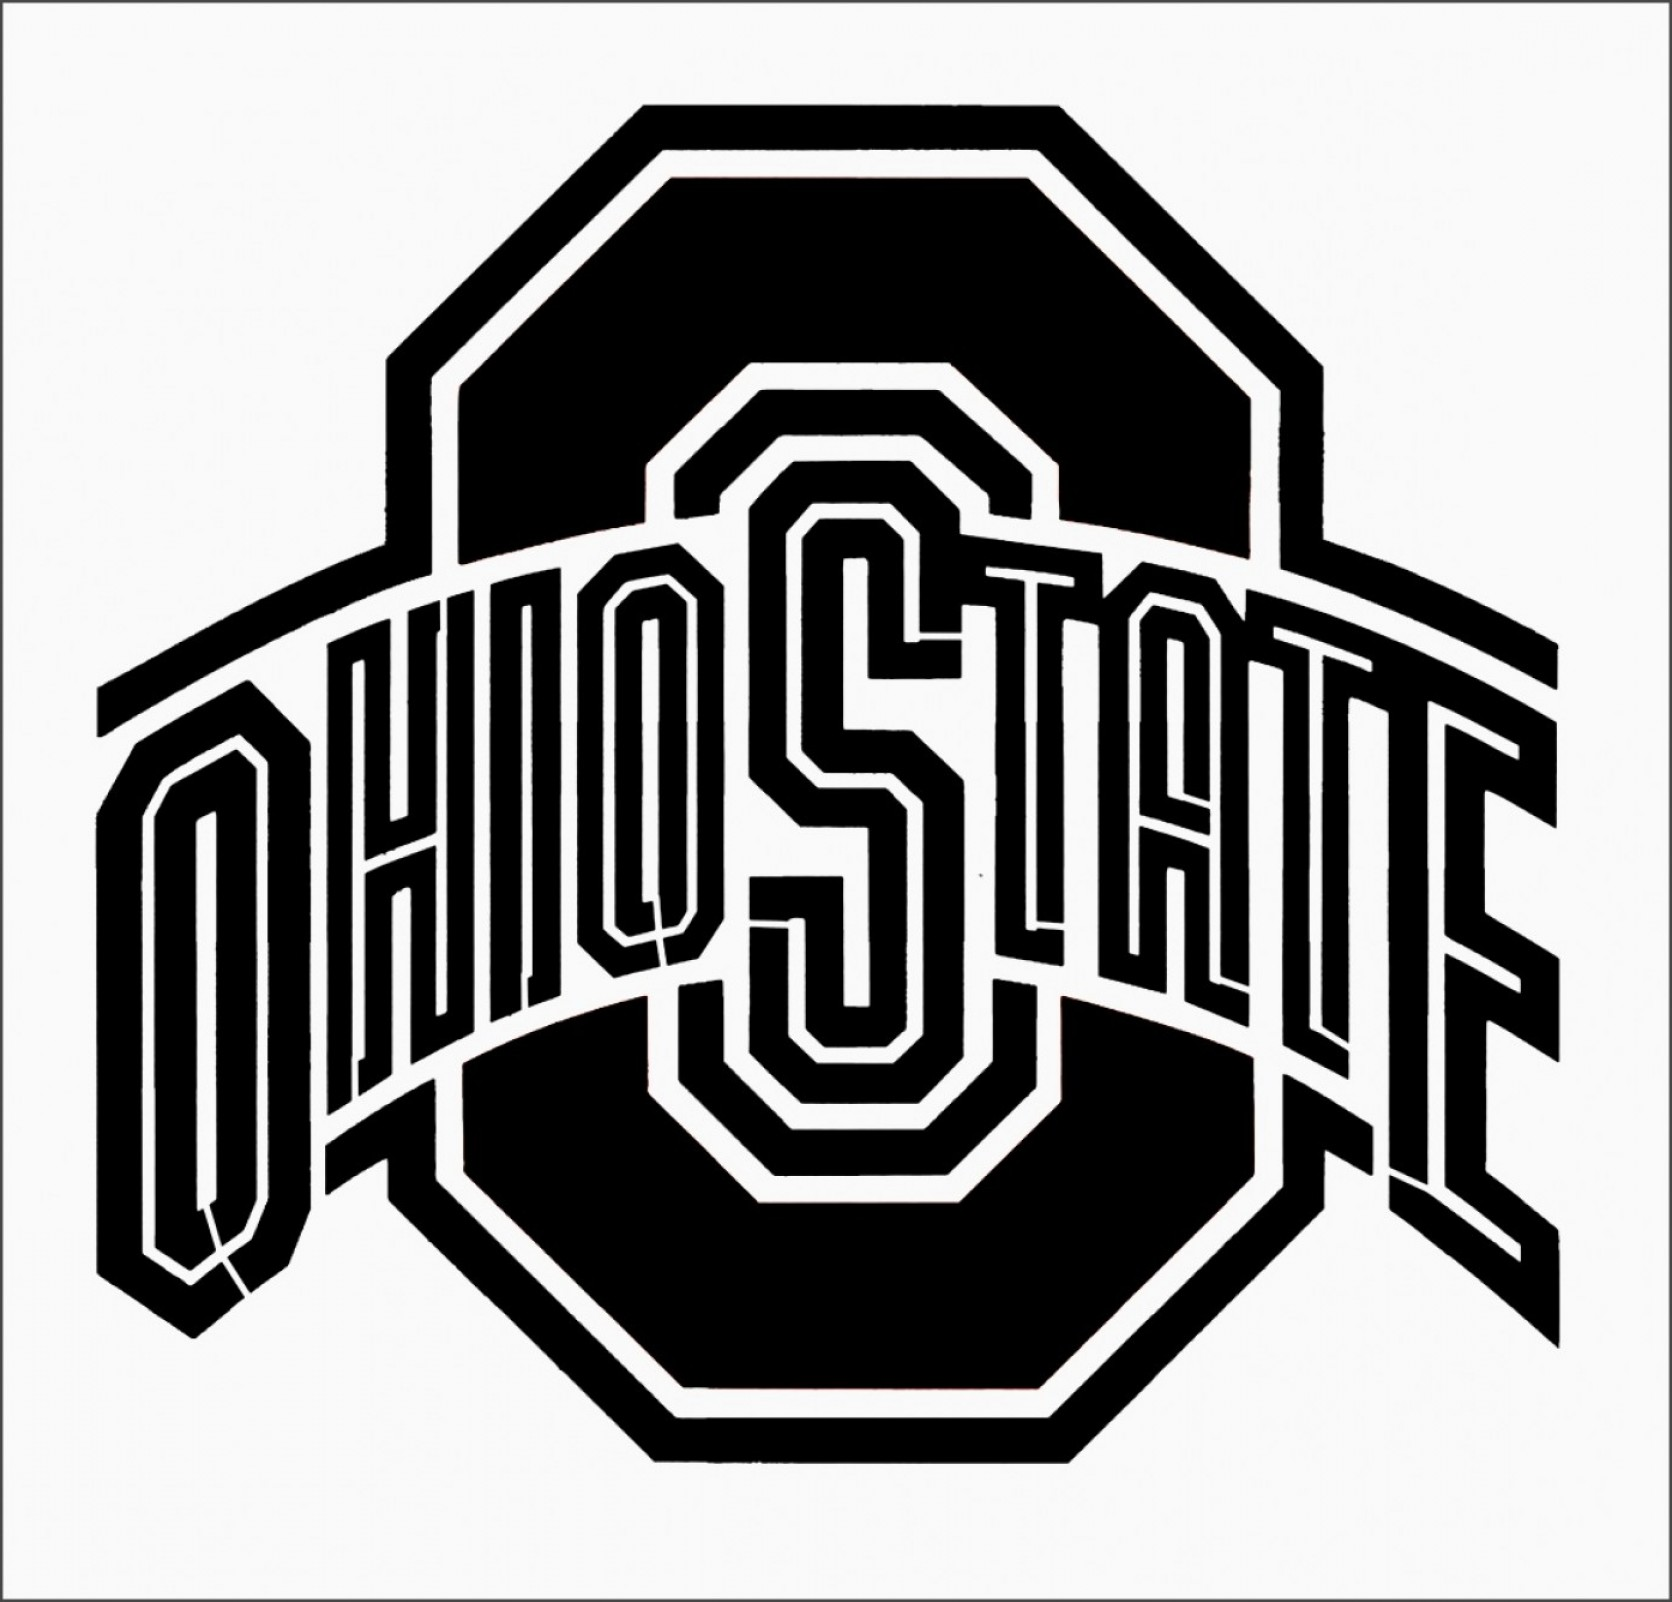 Buckeye Ohio State Outline Vector: Ohio State Logo Vector Xwhfg New Best S Of Osu Logo Stencil Ohio